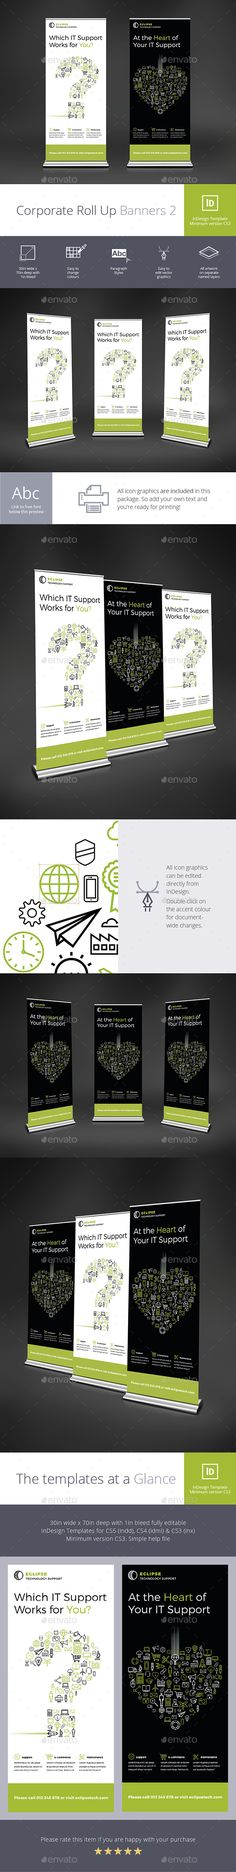 Corporate Roll Up Banners 2 by Shukerman Two Corporate Roll Up Banners produced in InDesign (minimum version CS3). All icon graphics can be edited directly from InDesign s